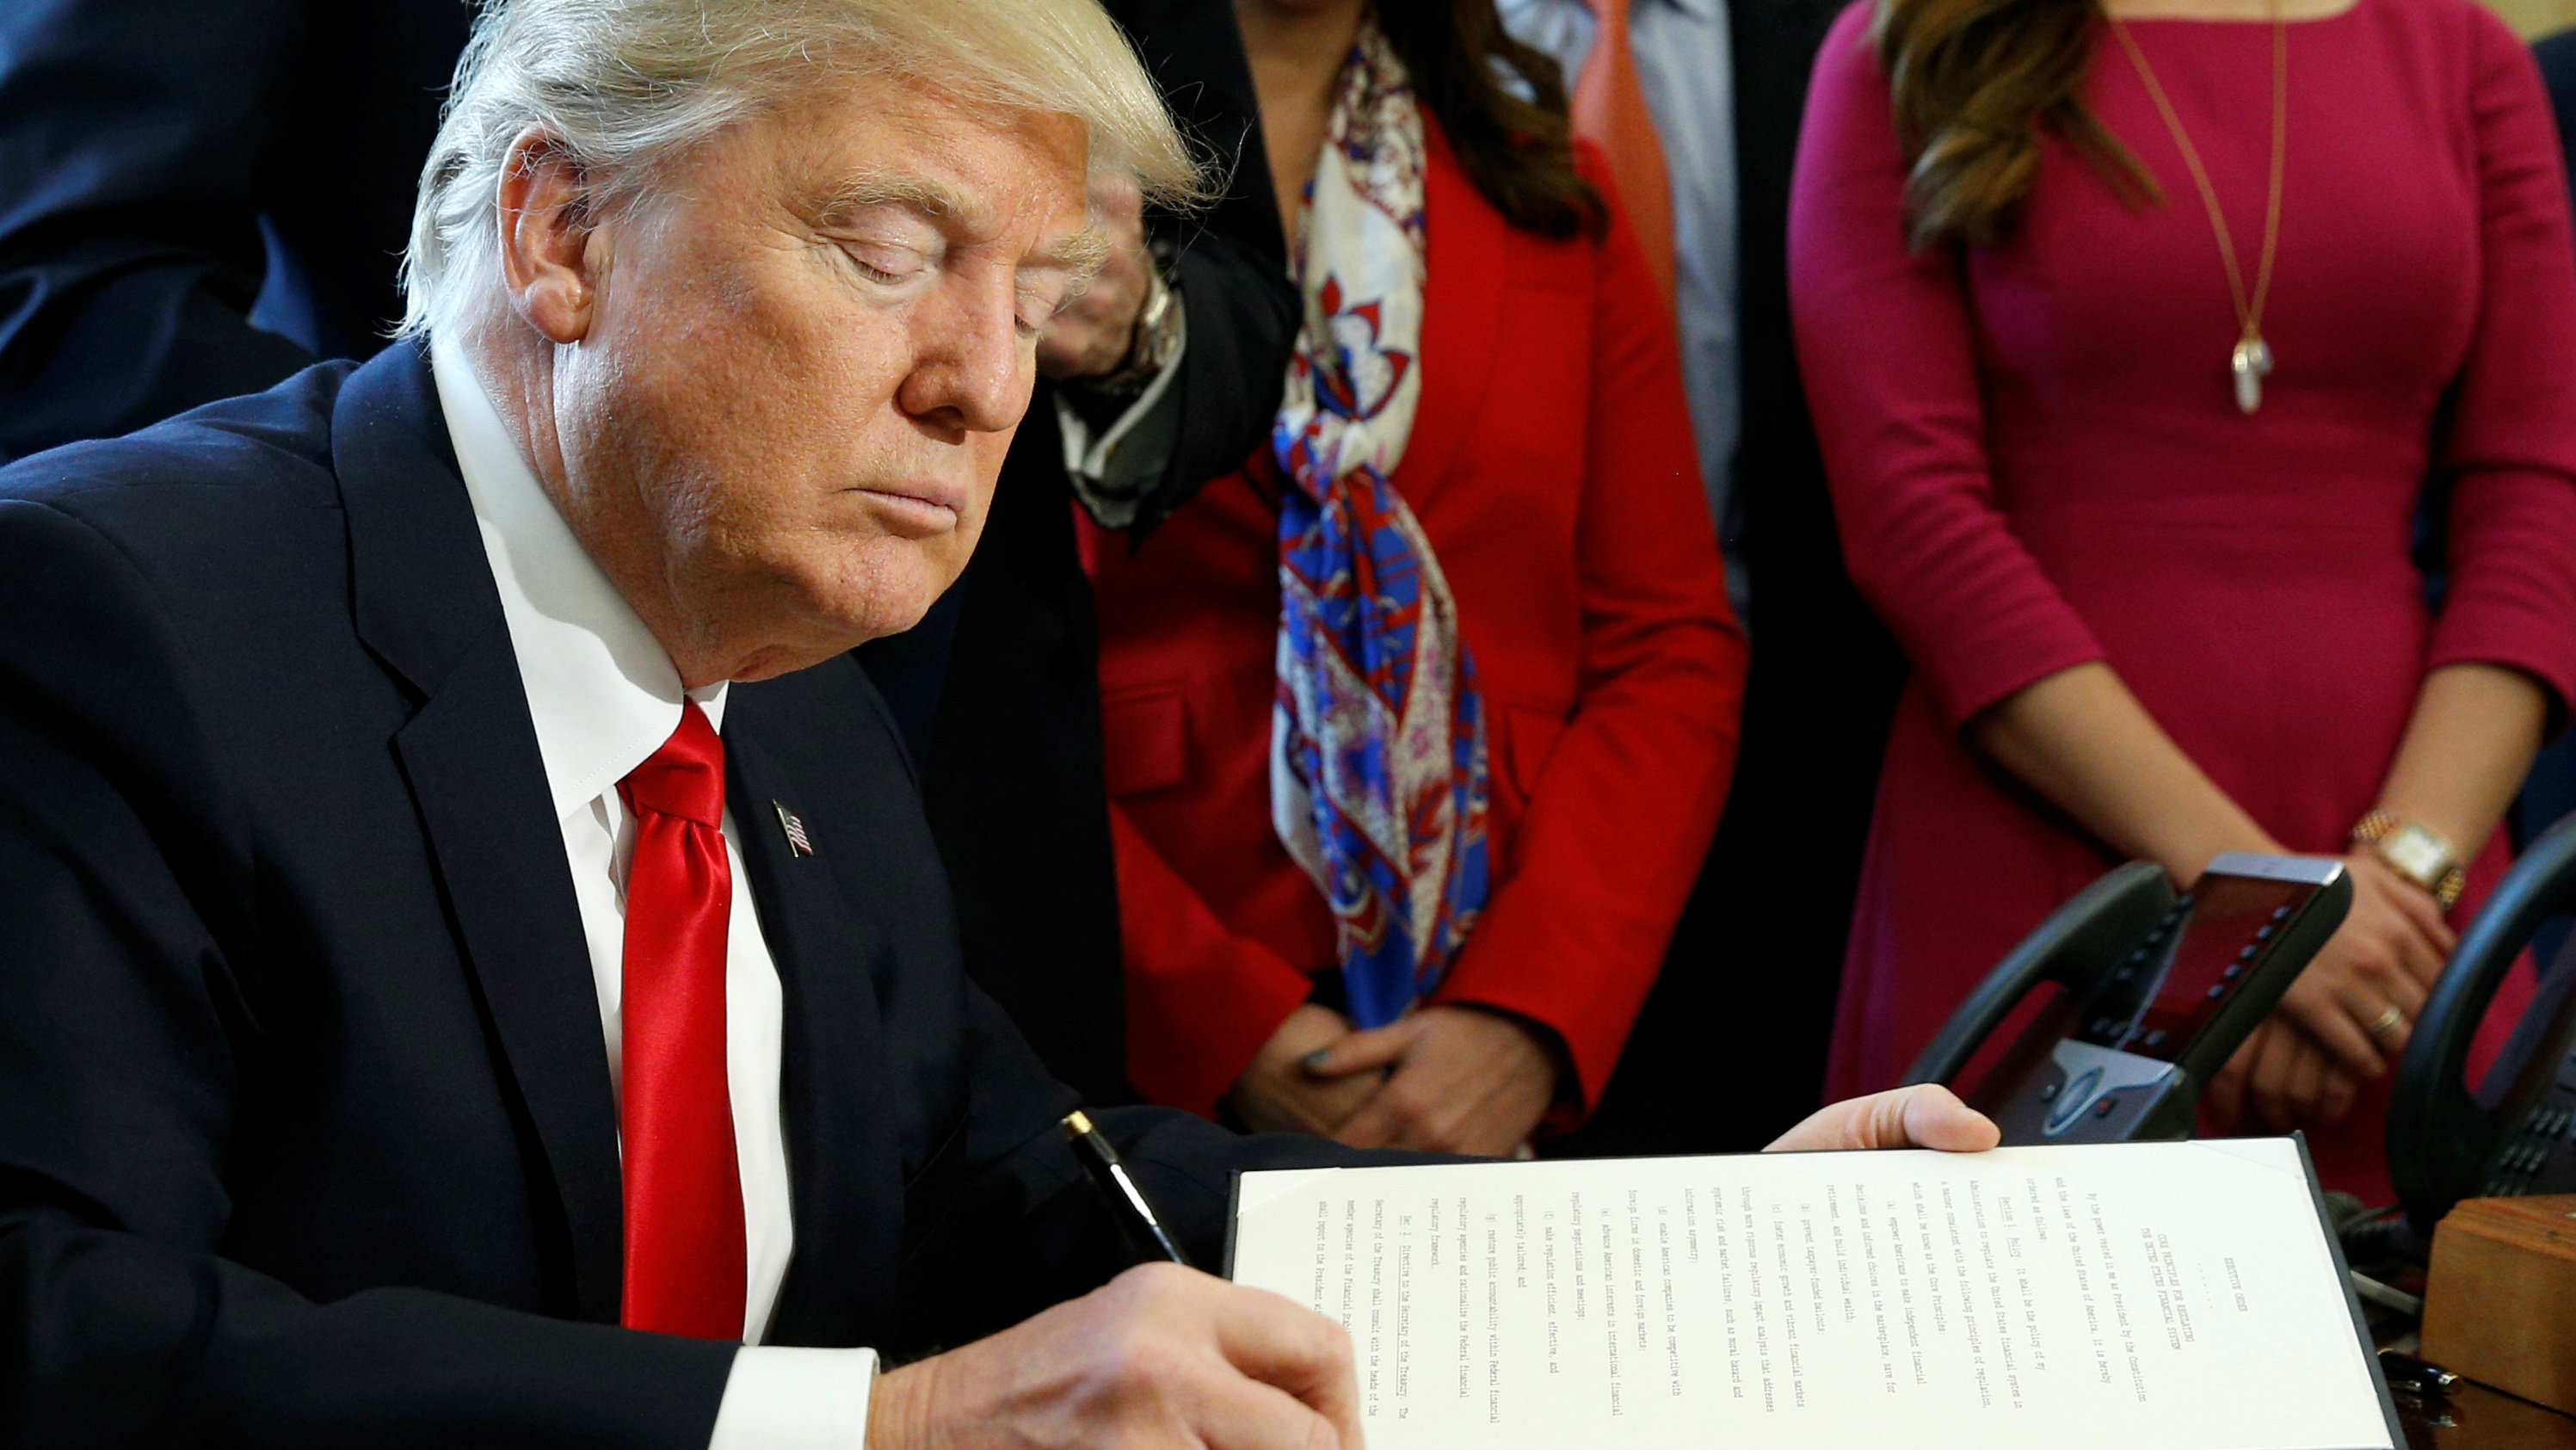 U.S. President Donald Trump signs an executive order rolling back regulations from the 2010 Dodd-Frank law on Wall Street reform at the White House in Washington, U.S. February 3, 2017.